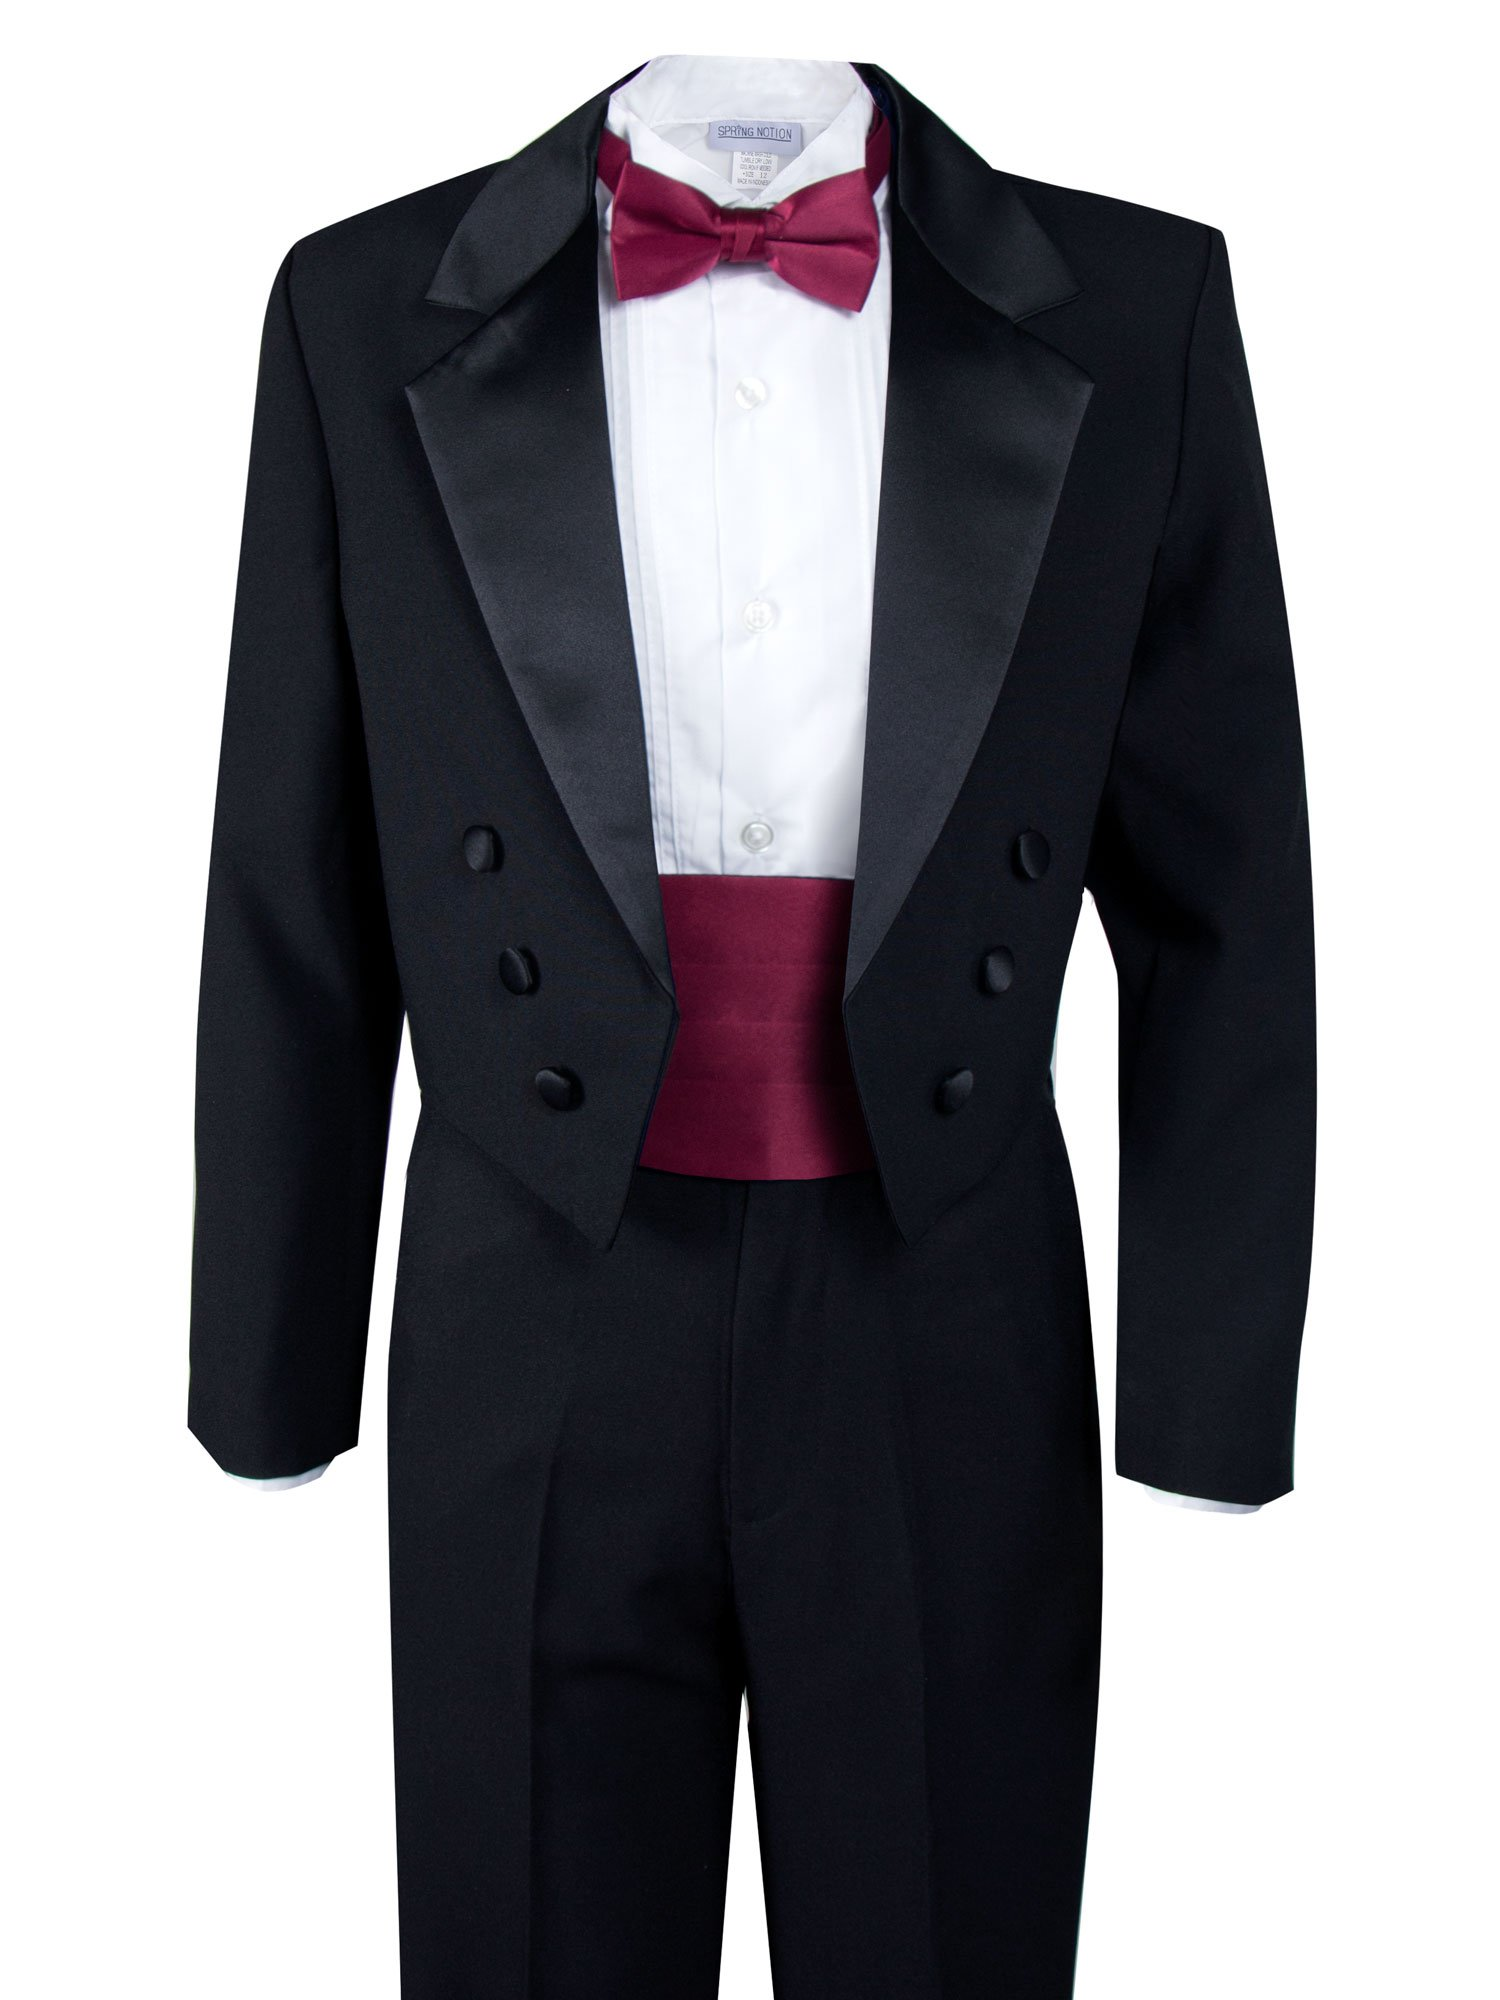 Spring Notion Boys' Black Classic Tuxedo with Tail Burgundy 4T